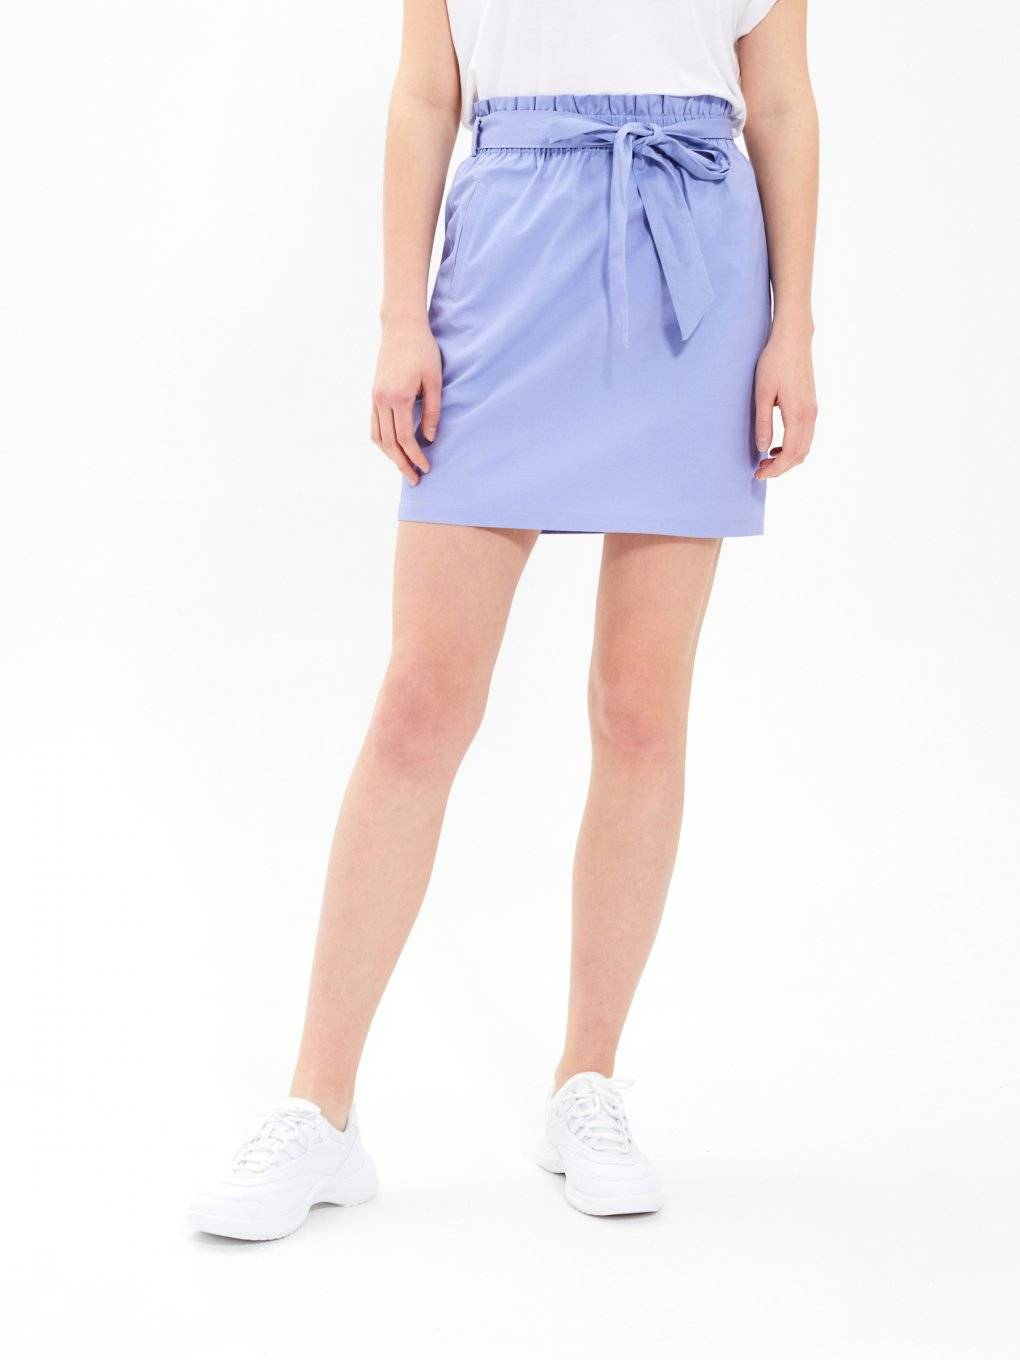 Paperbag skirt with belt